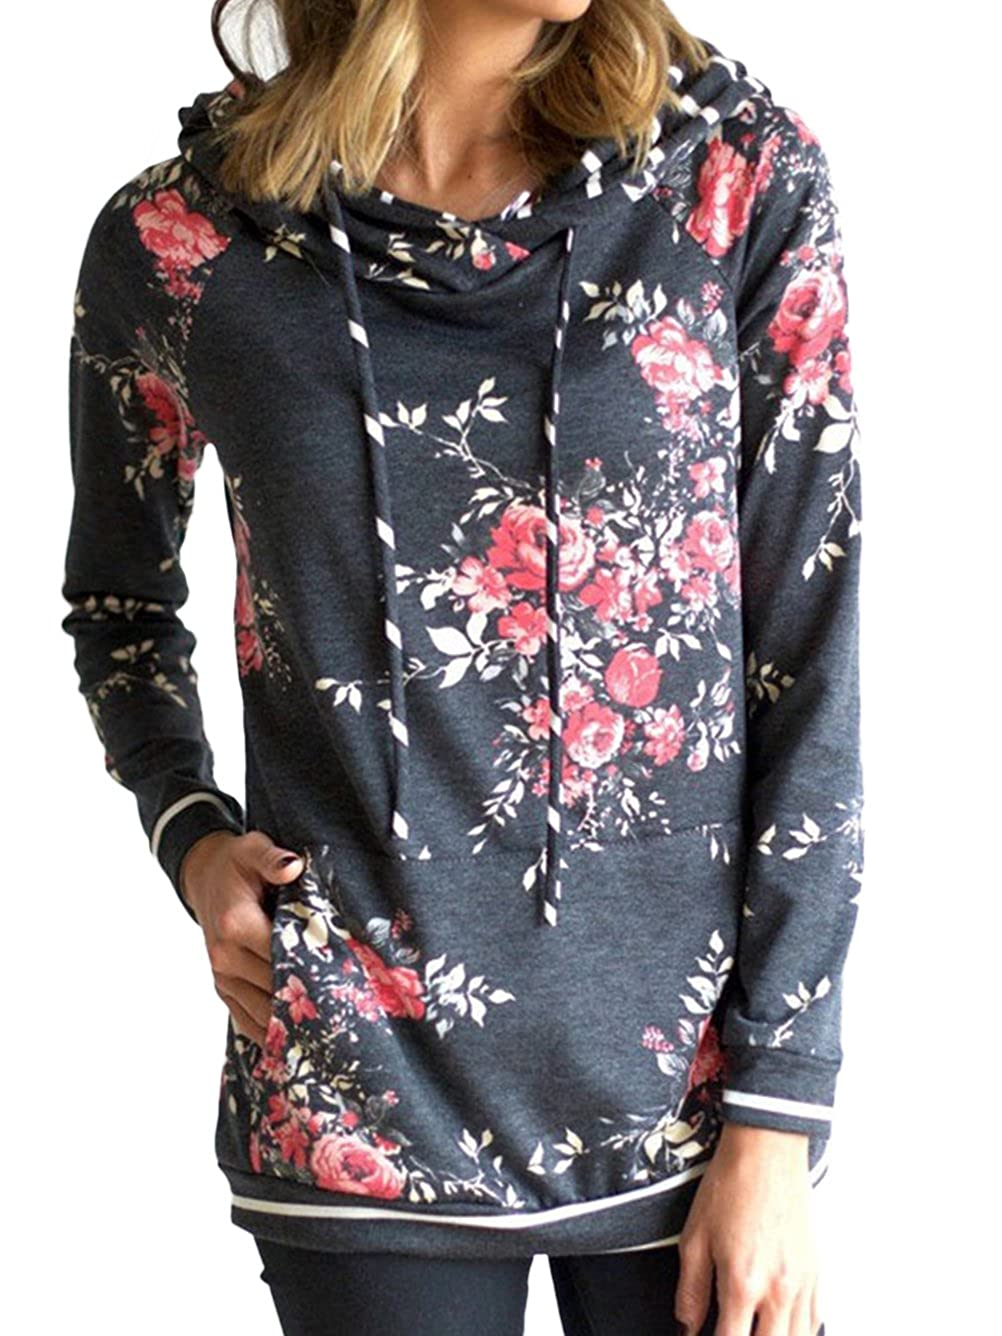 WD-Amour Women's Floral Print Casual Drawstring Long Sleeve Hoodie Pullover Sweatshirts